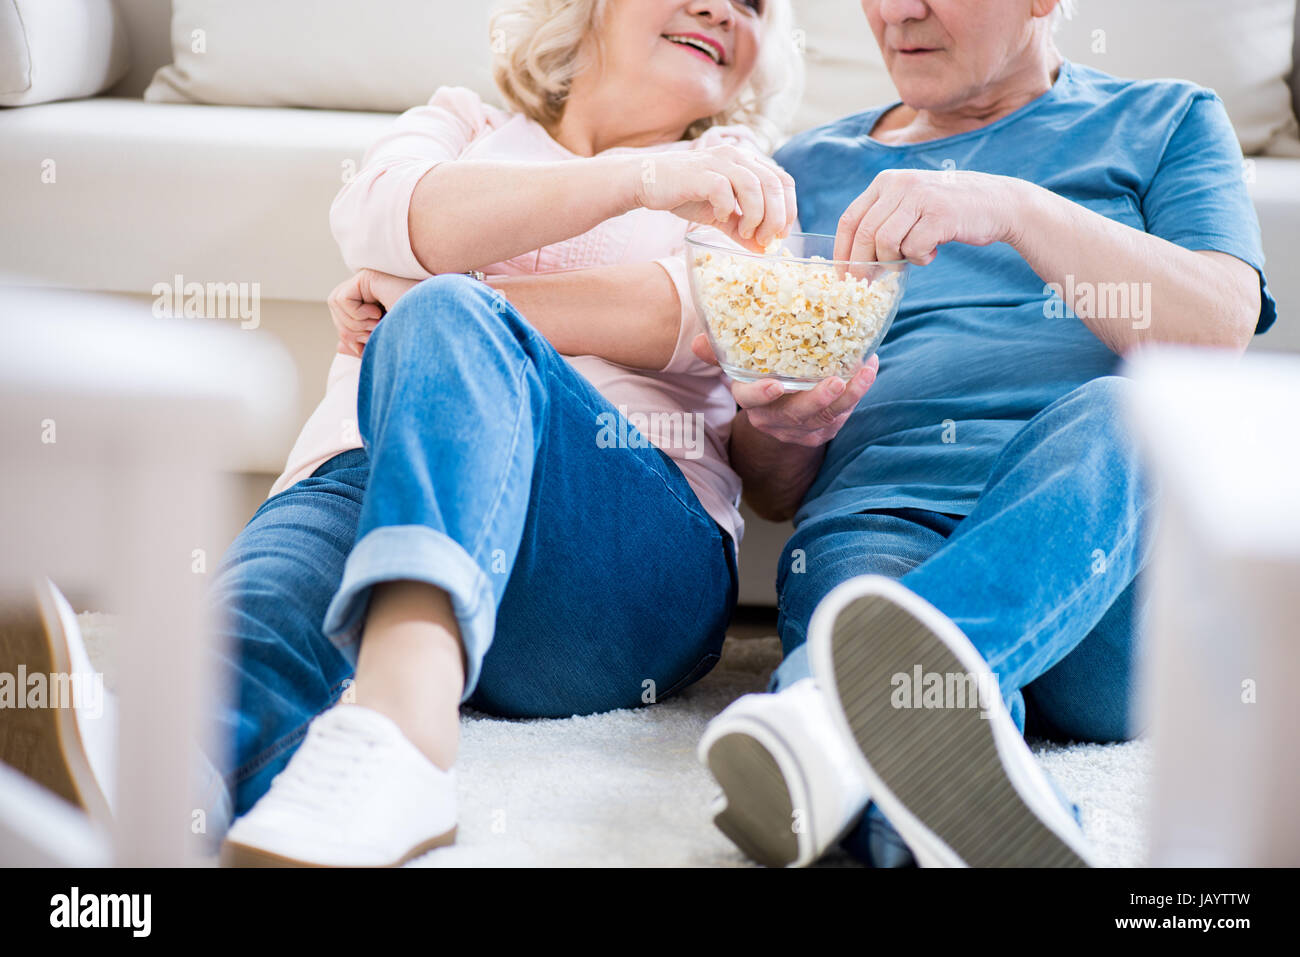 Cropped shot of happy senior couple eating popcorn sur canapé Photo Stock